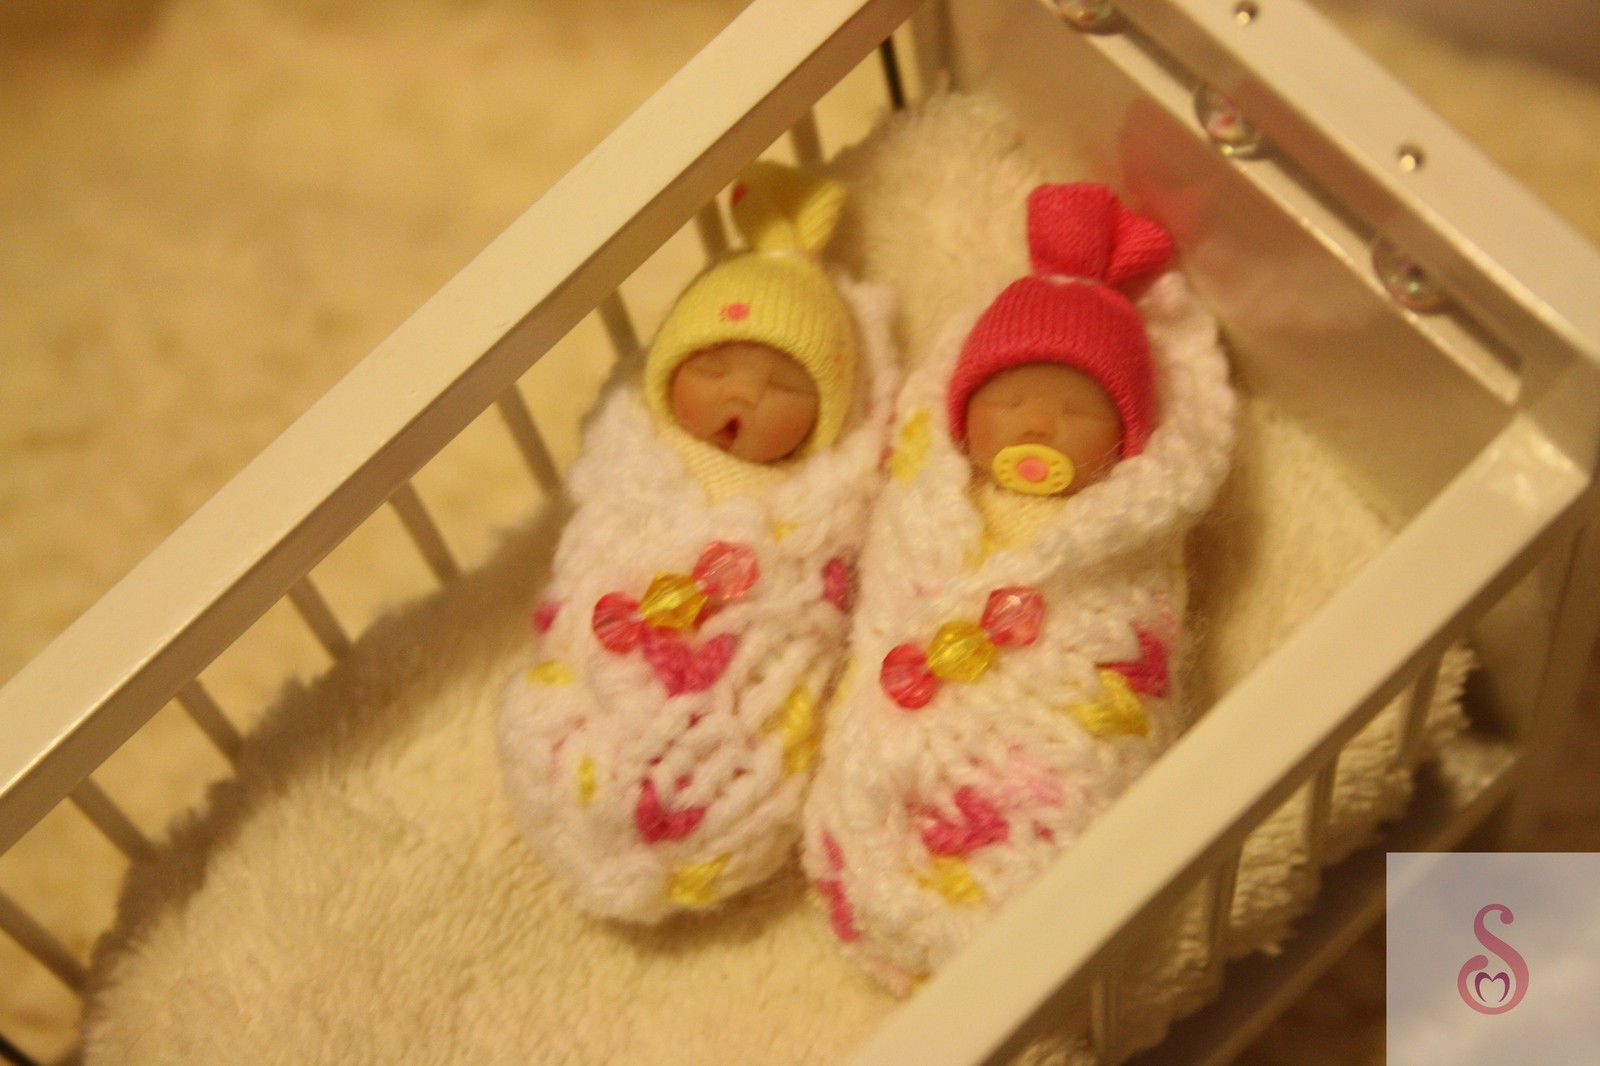 OOAK Bundle Baby Twins 12th Doll House Miniature Display Gift Artisan Sheryl C | eBay